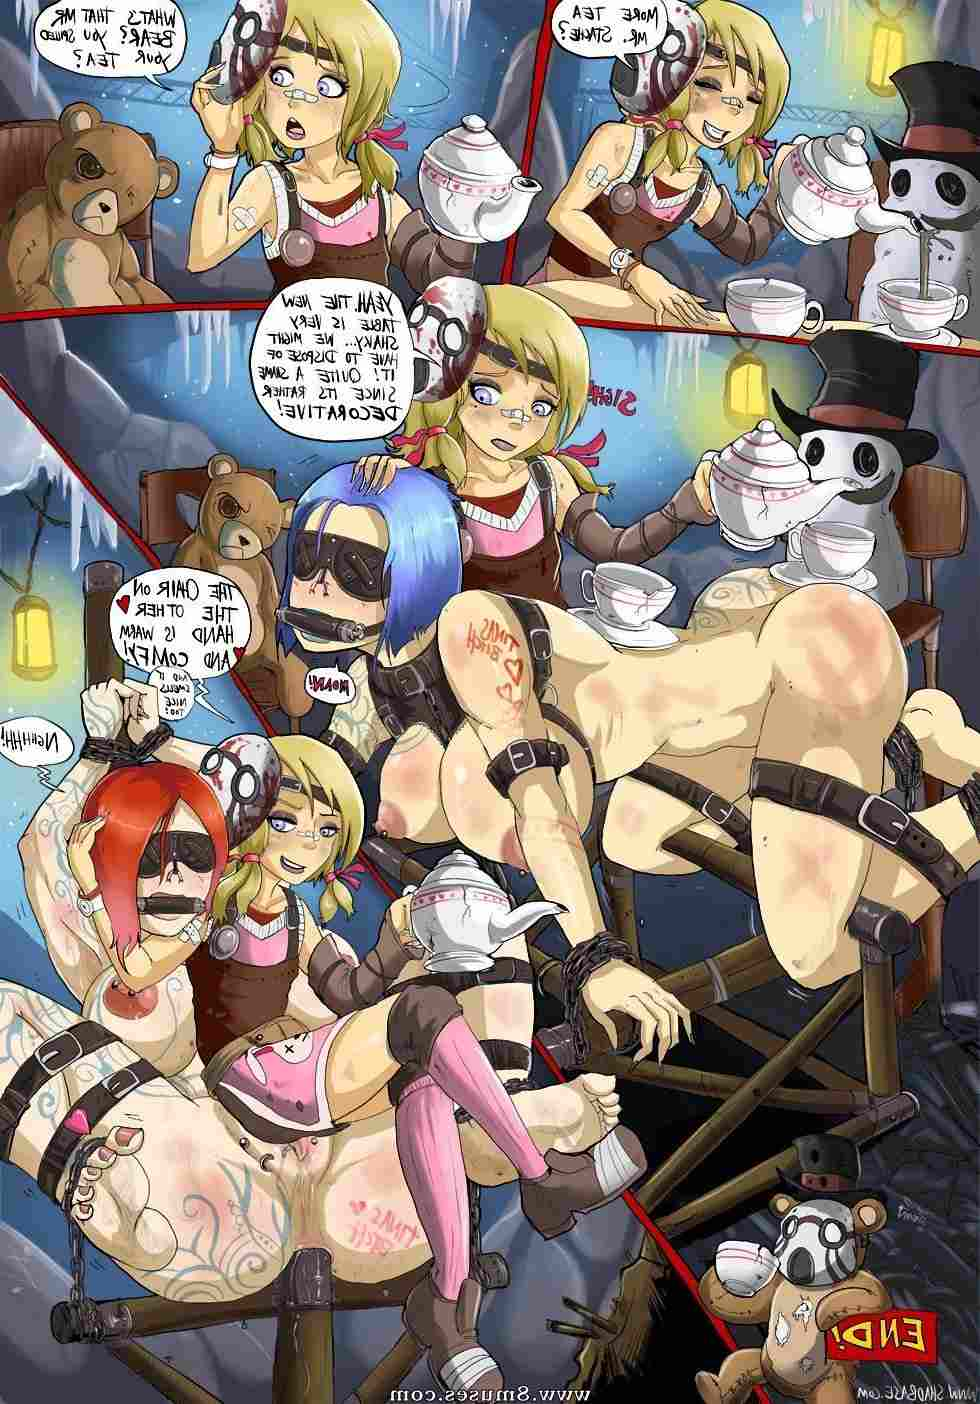 ShadBase-Comics/Bonerlands Bonerlands__8muses_-_Sex_and_Porn_Comics_3.jpg